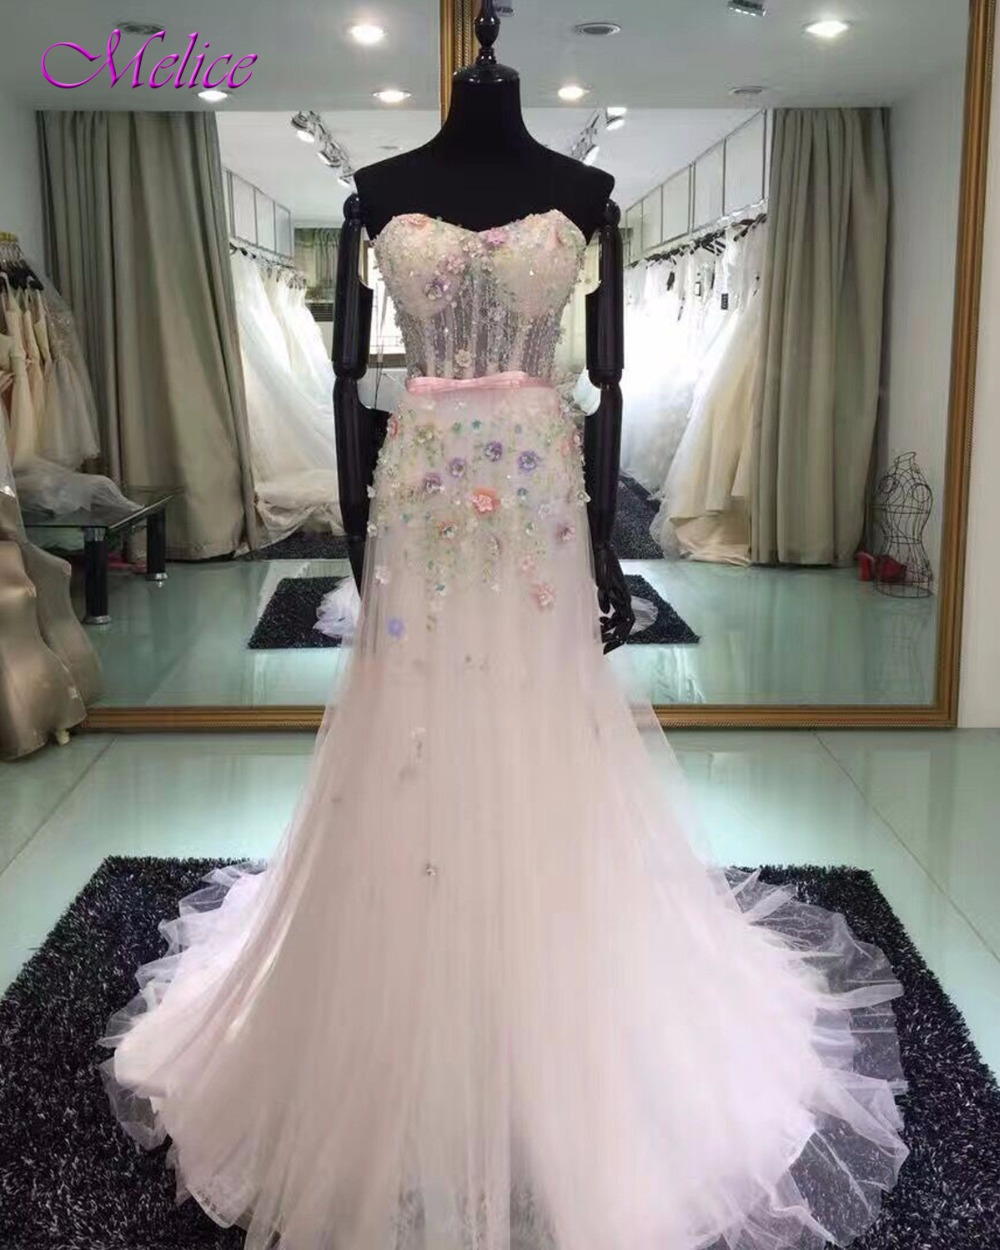 Fmogl Elegant Strapless Lace Up Mermaid Prom Dresses 2019 Princess Appliques Beaded Formal Party Gown Robe De Soiree Plus Size